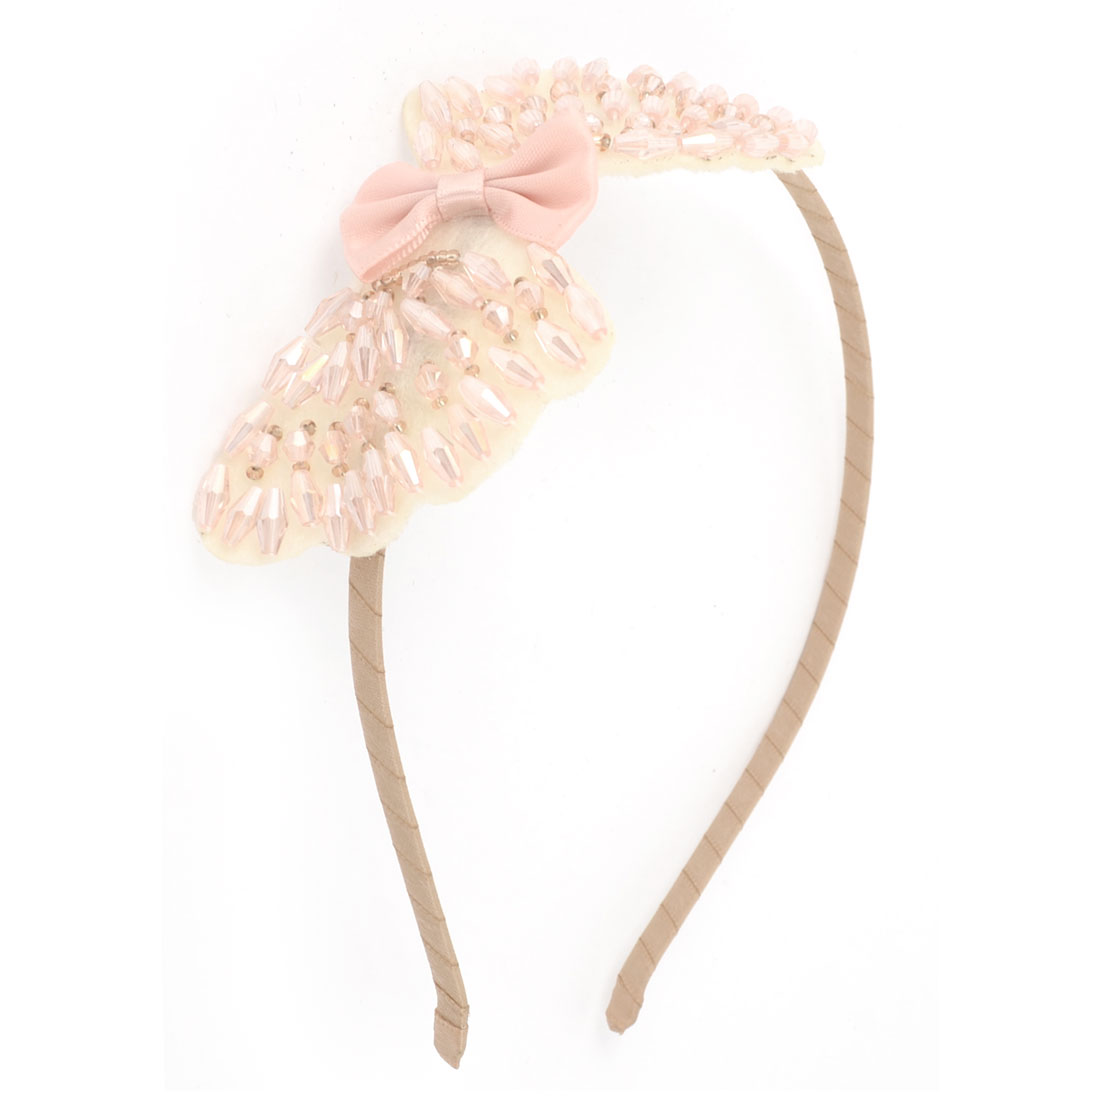 Rhinestones Embellished Bowtie Decoration Slim Hair Hoop Headband Hairband Light Pink for Ladies